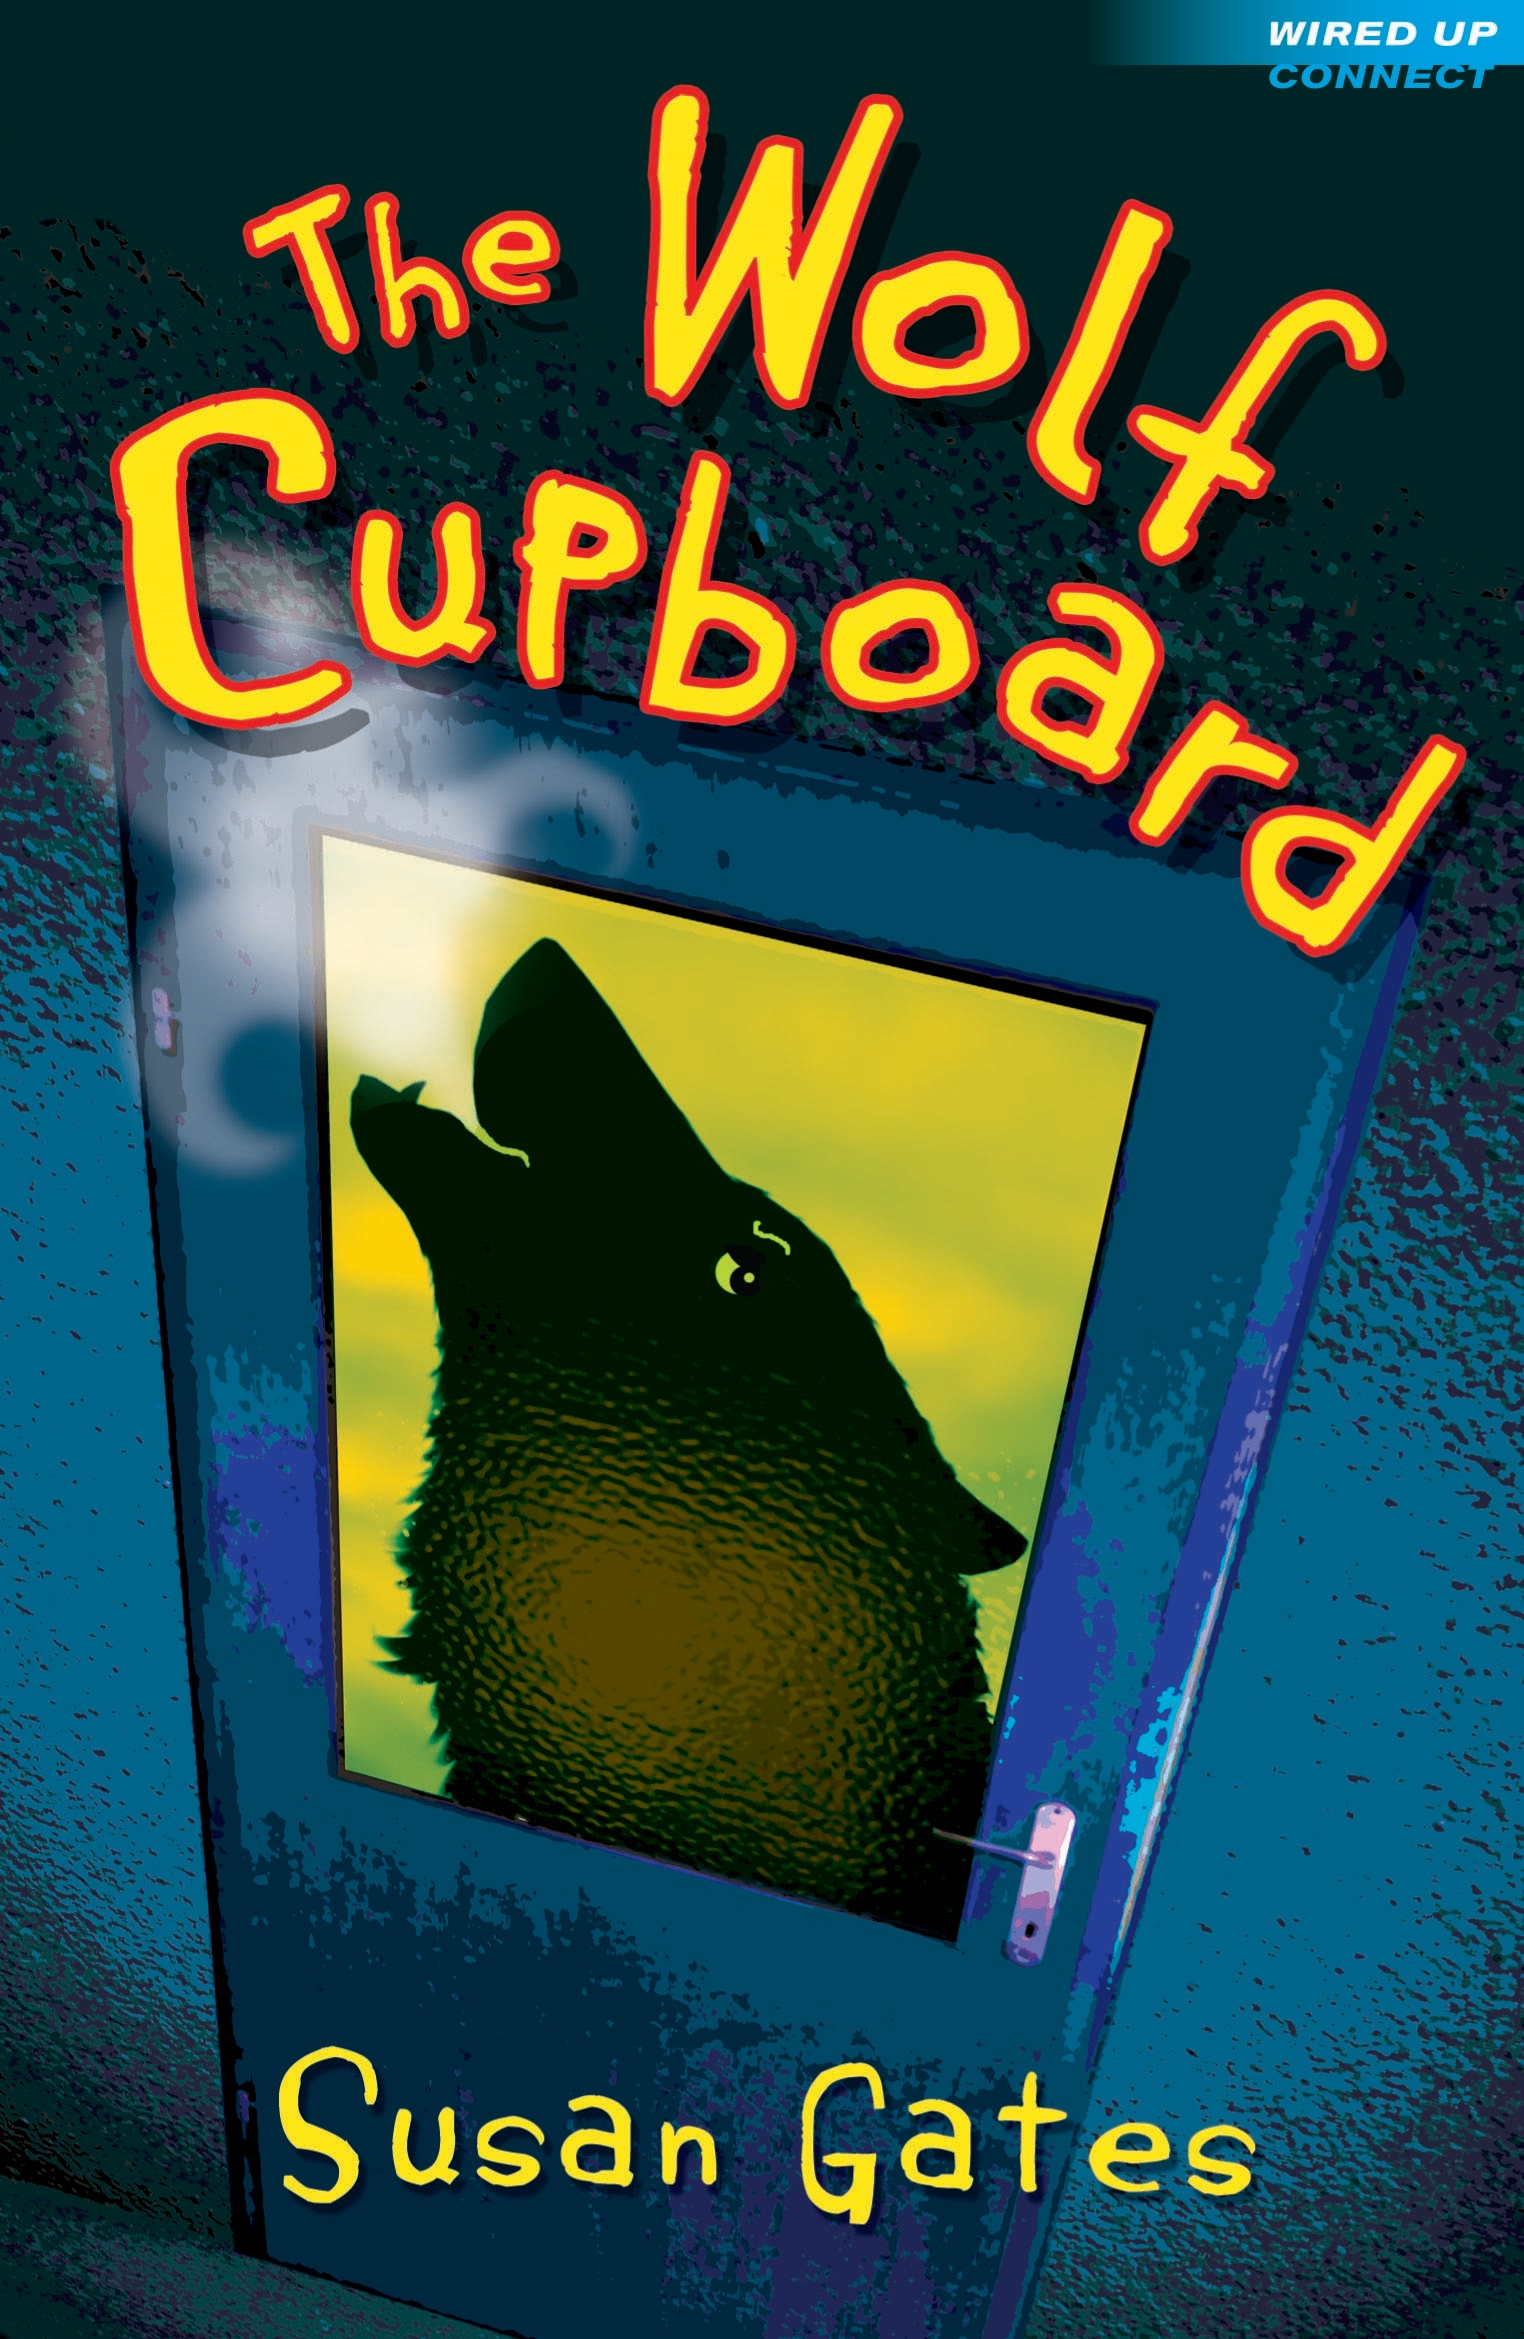 The Wolf Cupboard